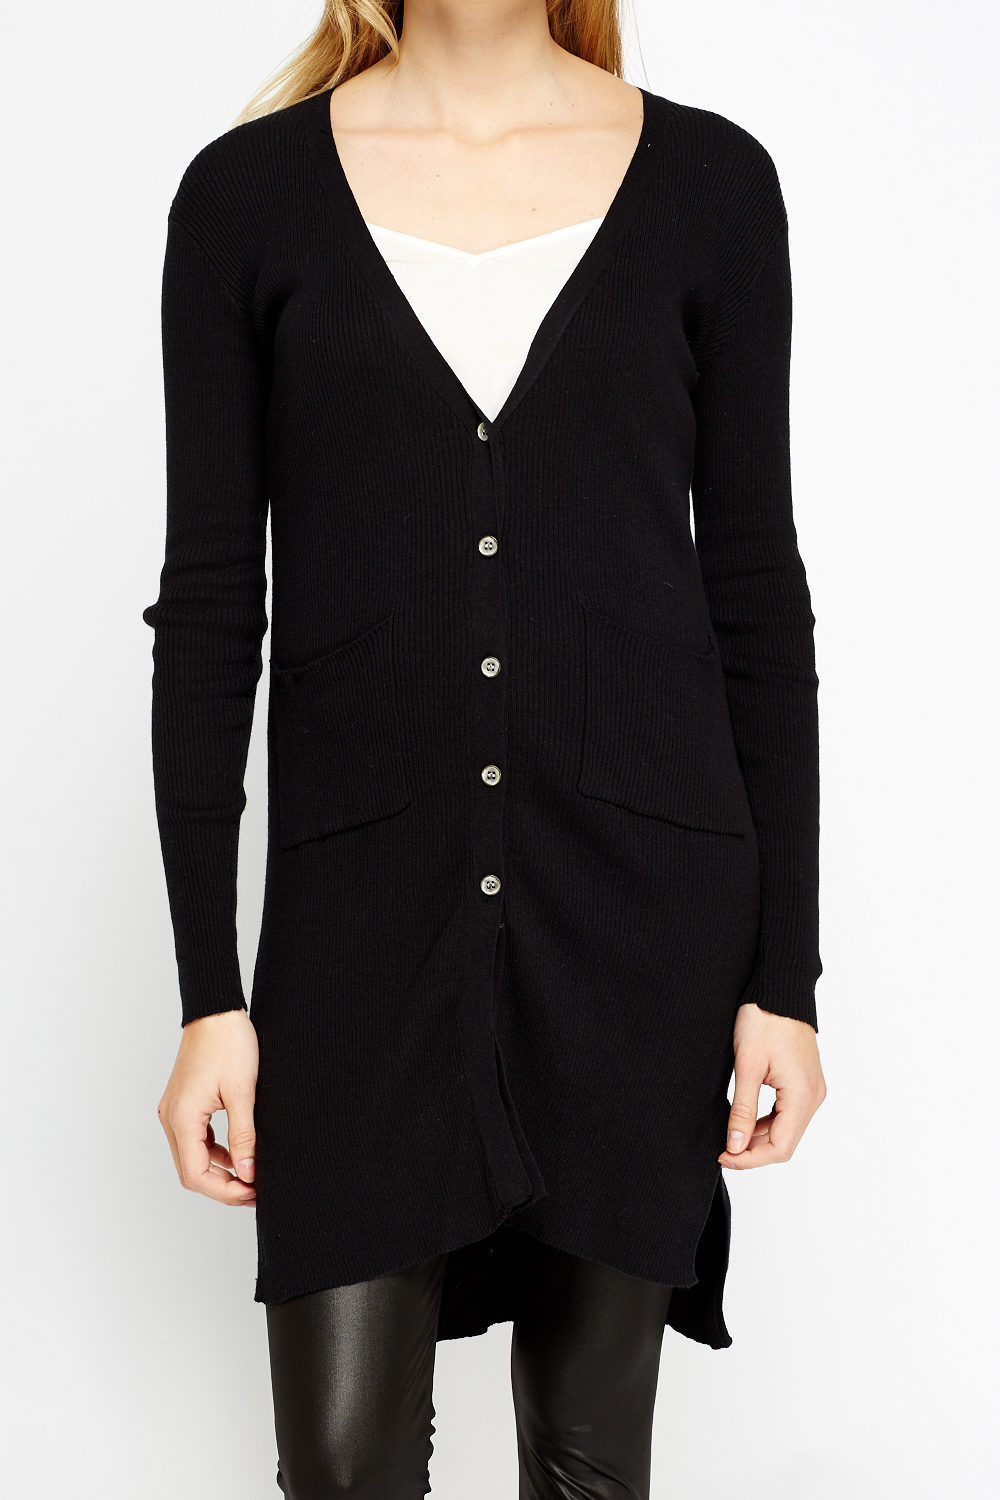 Long Button Up Cardigan - Just £5